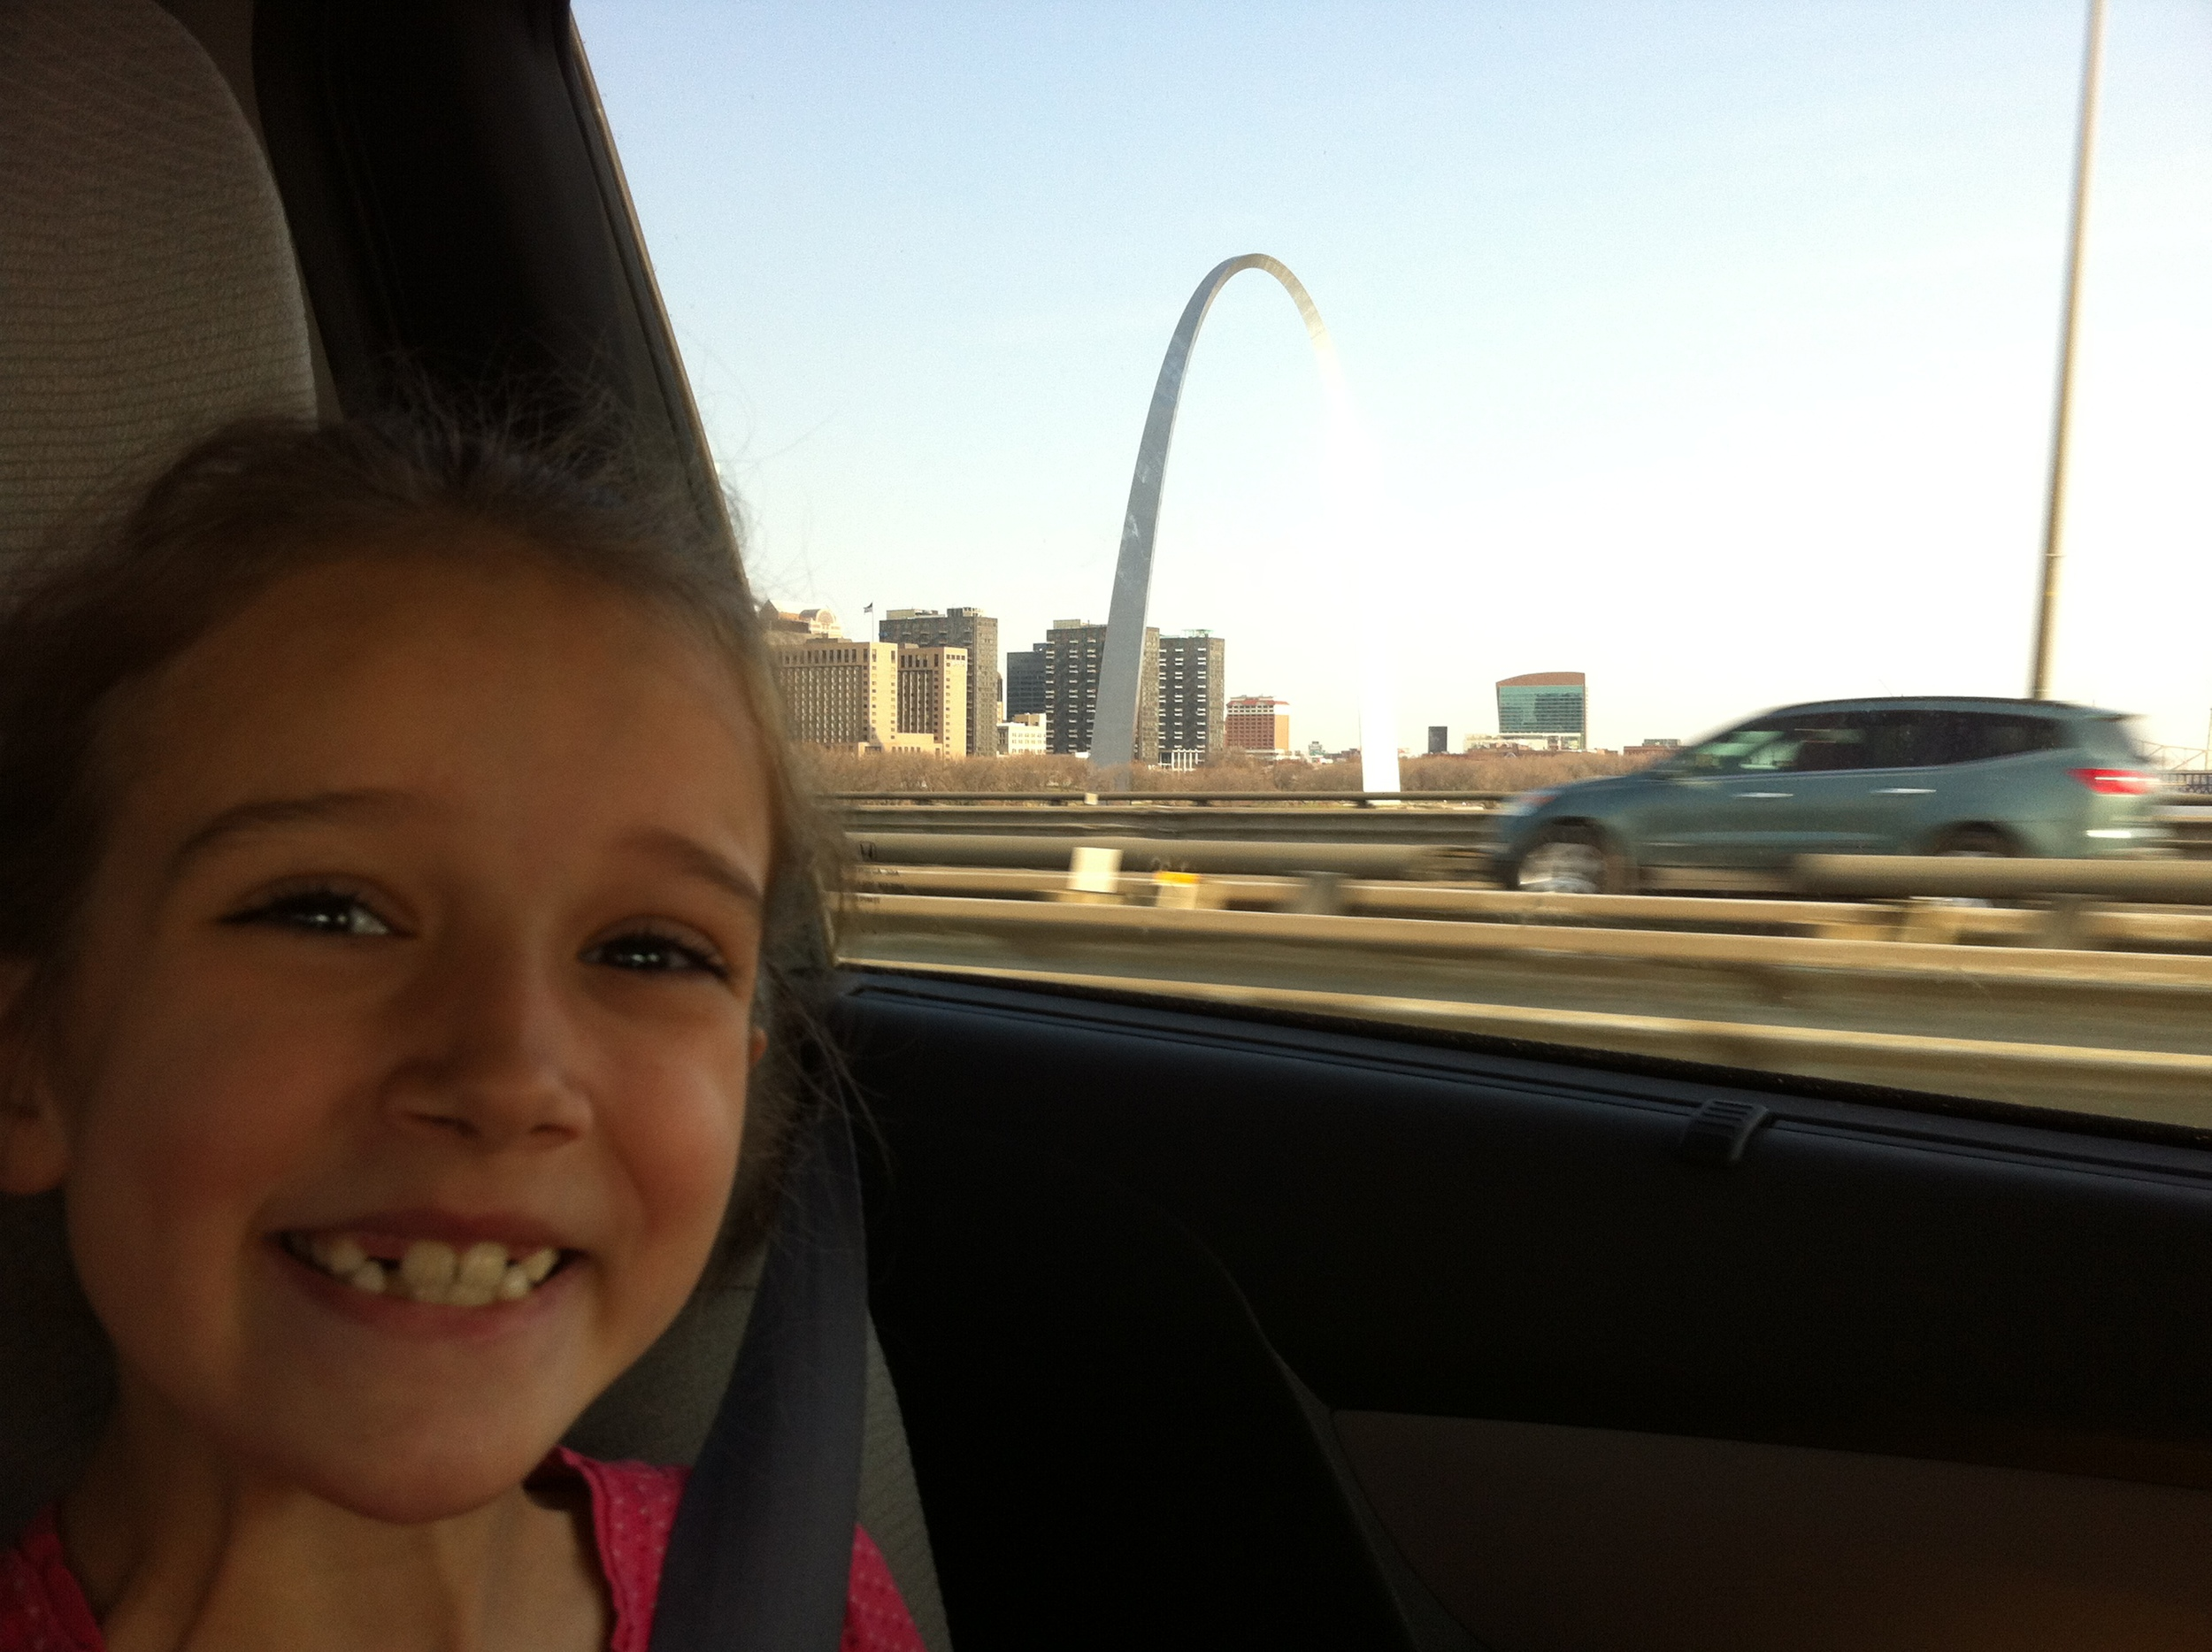 Passing the St. Louis arch.